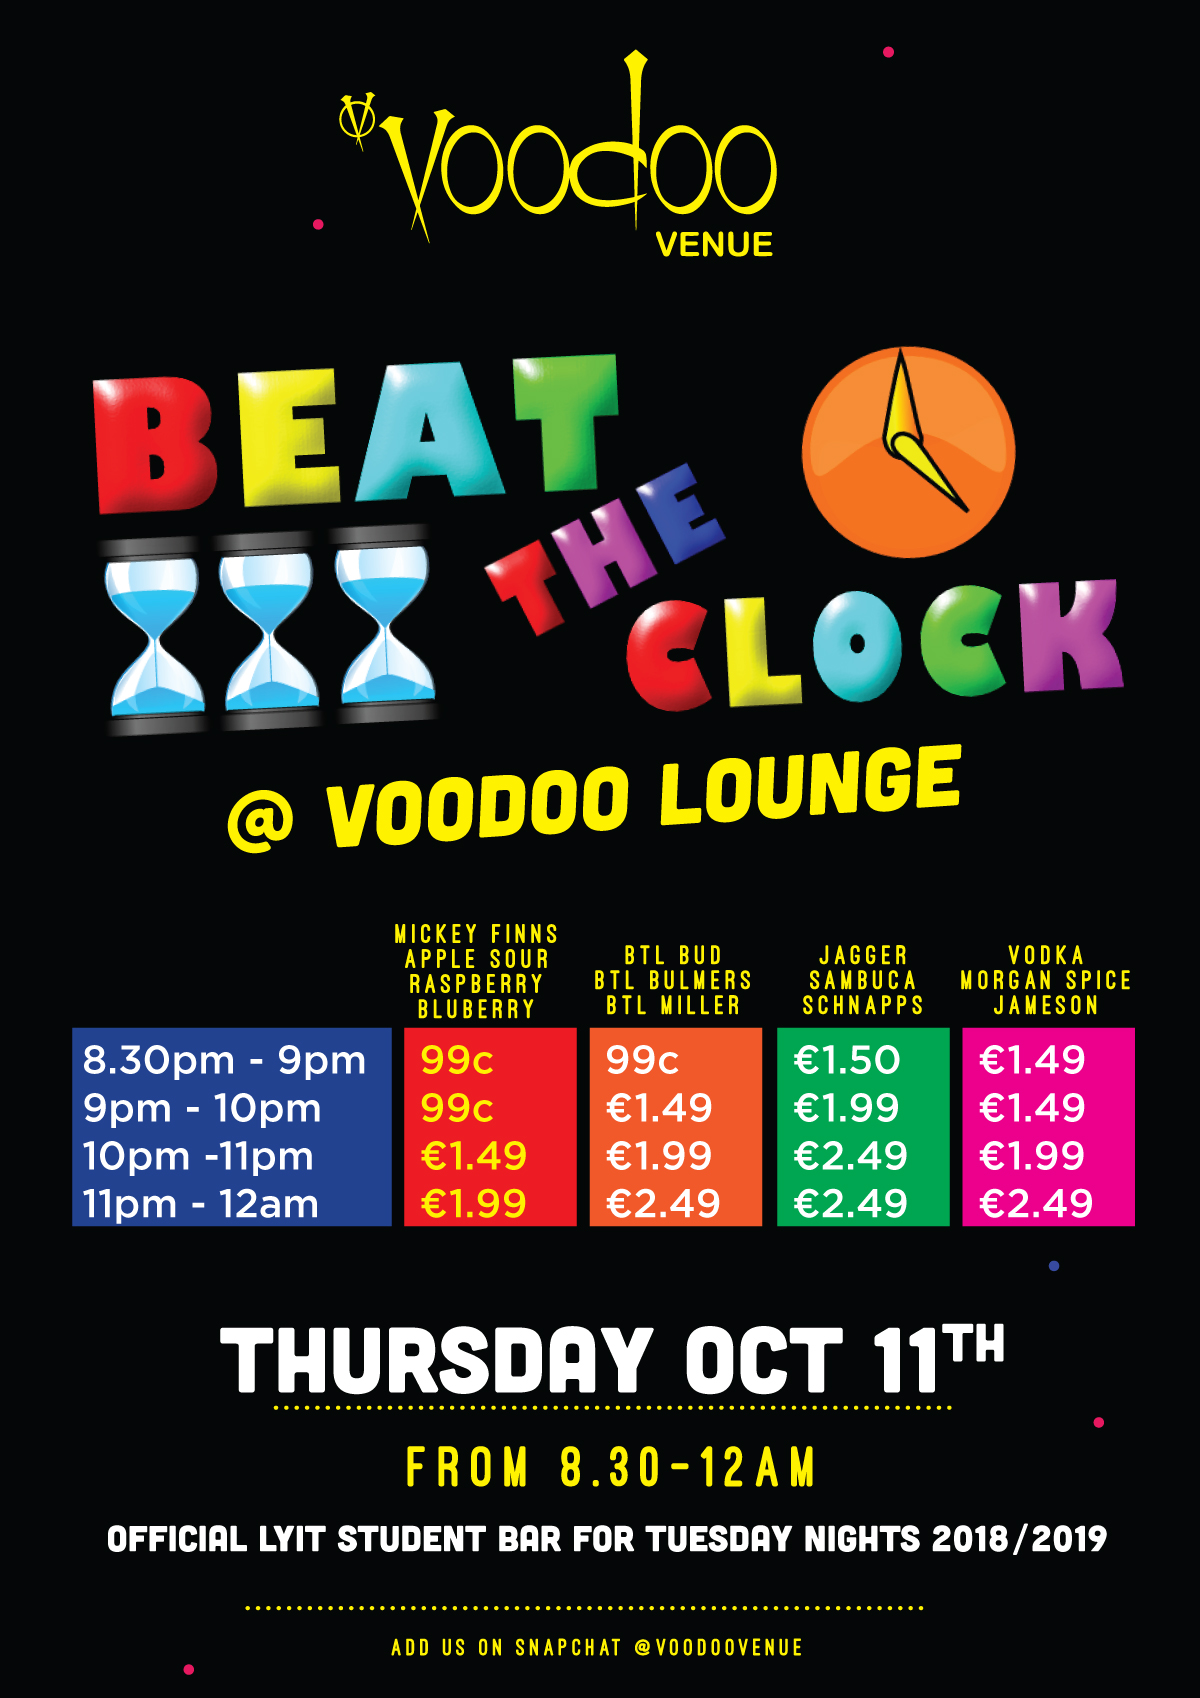 voodoo-lounge---beat-the-clock---thurs-oct-11-2018.jpg